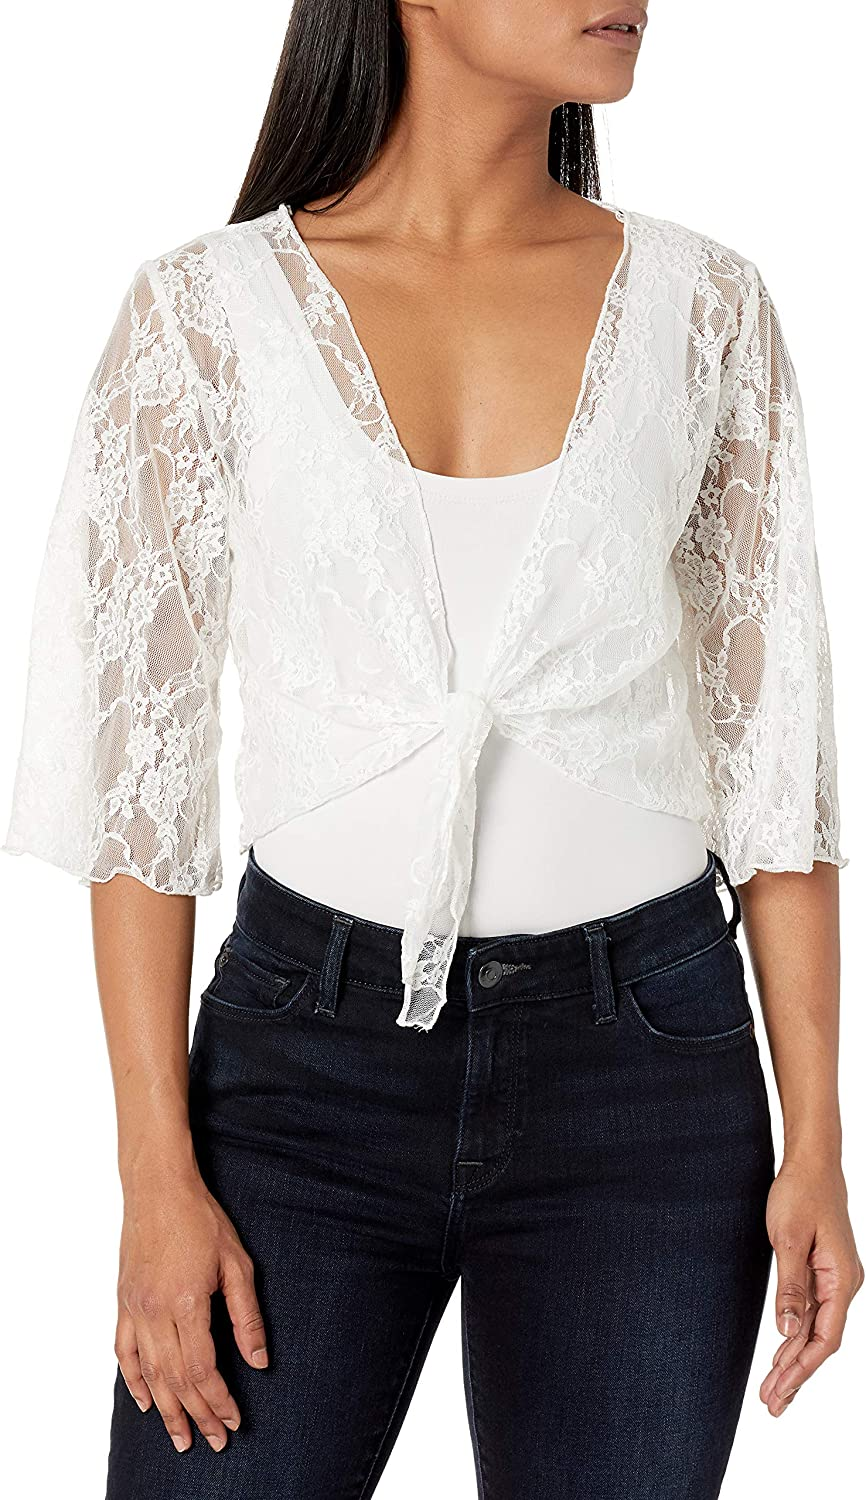 Star Vixen Women's Petite 3/4 Sleeve Stretch Lace Tiefront Shrug Sweater